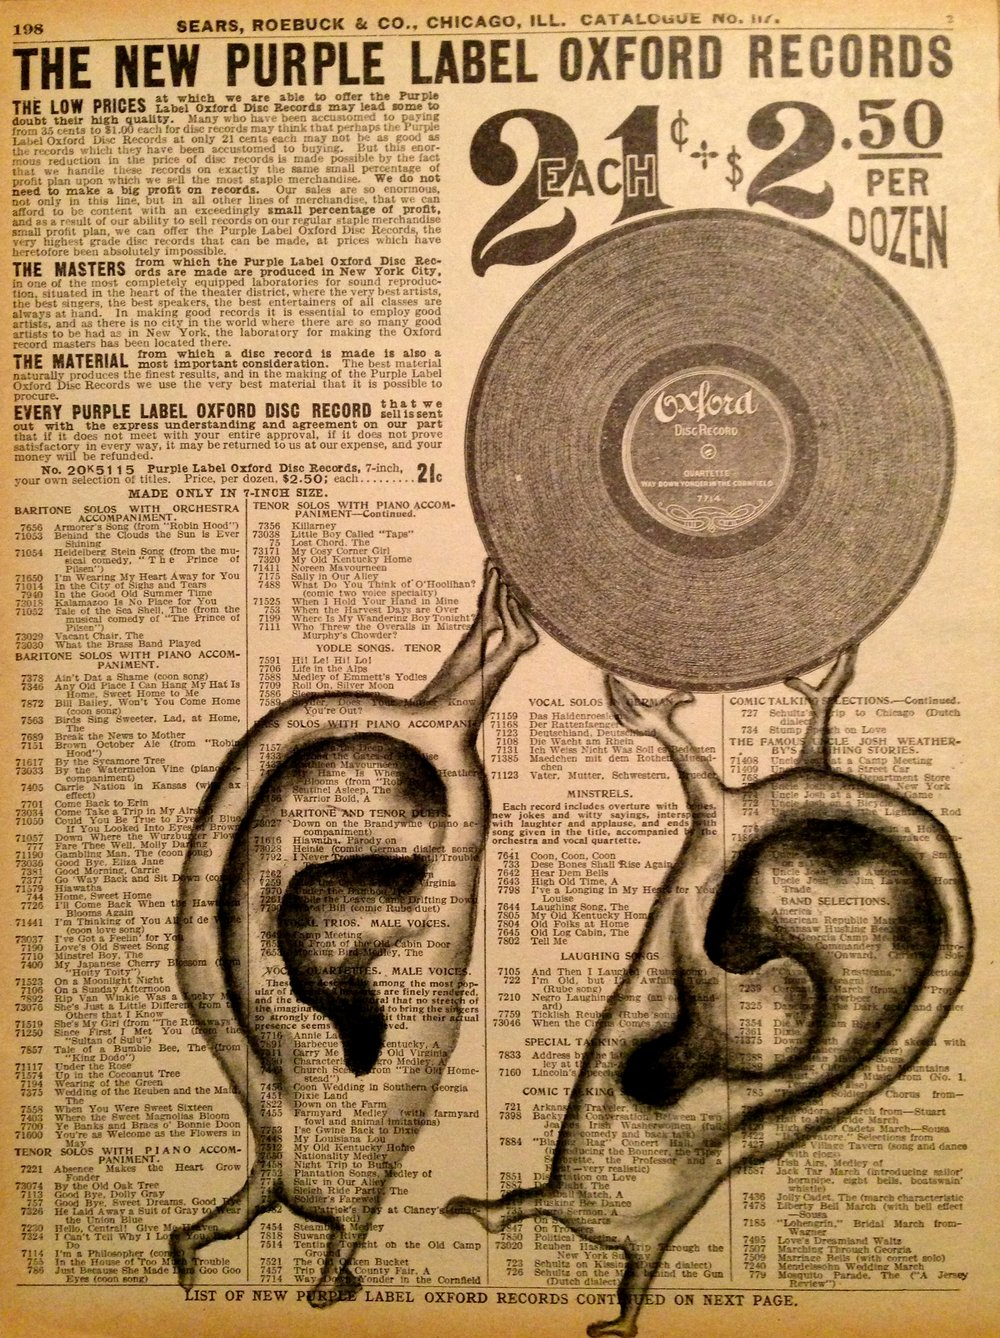 Record On Deaf Ears, 2016 Charcoal on antique catalog